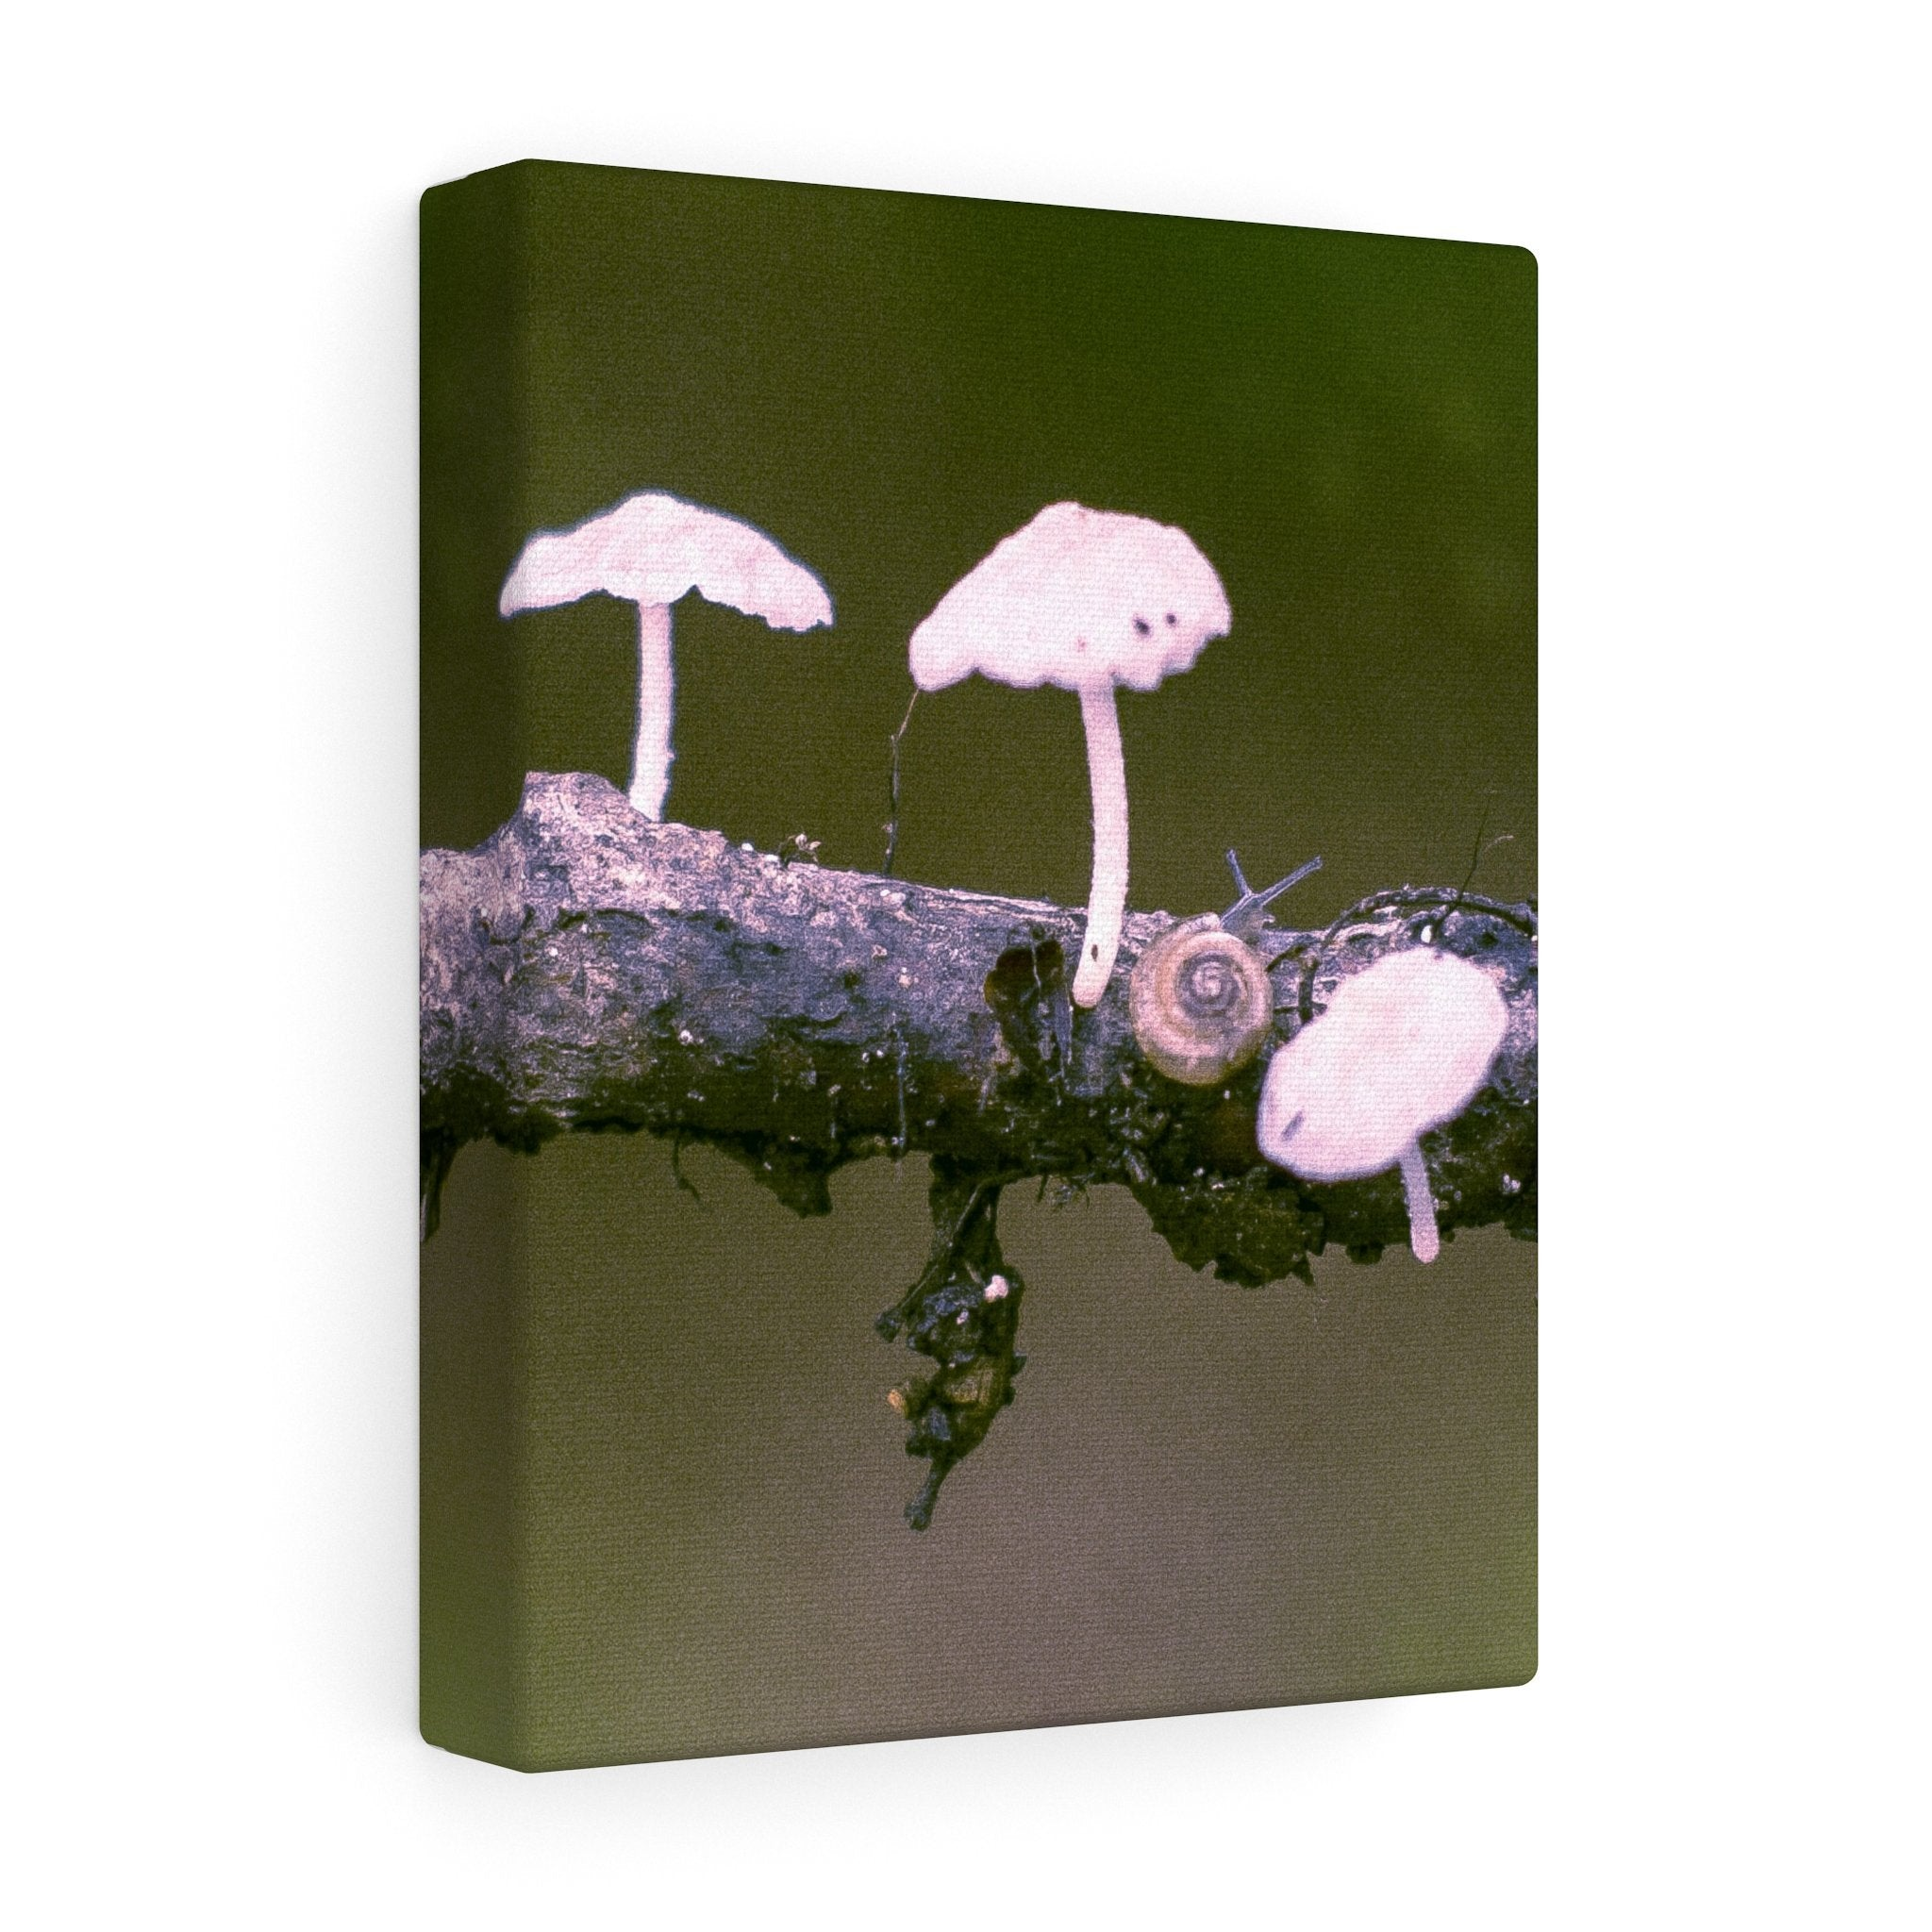 Snail on a Log Stretched canvas 8″ × 10″ / Stretched Canvas (1.5